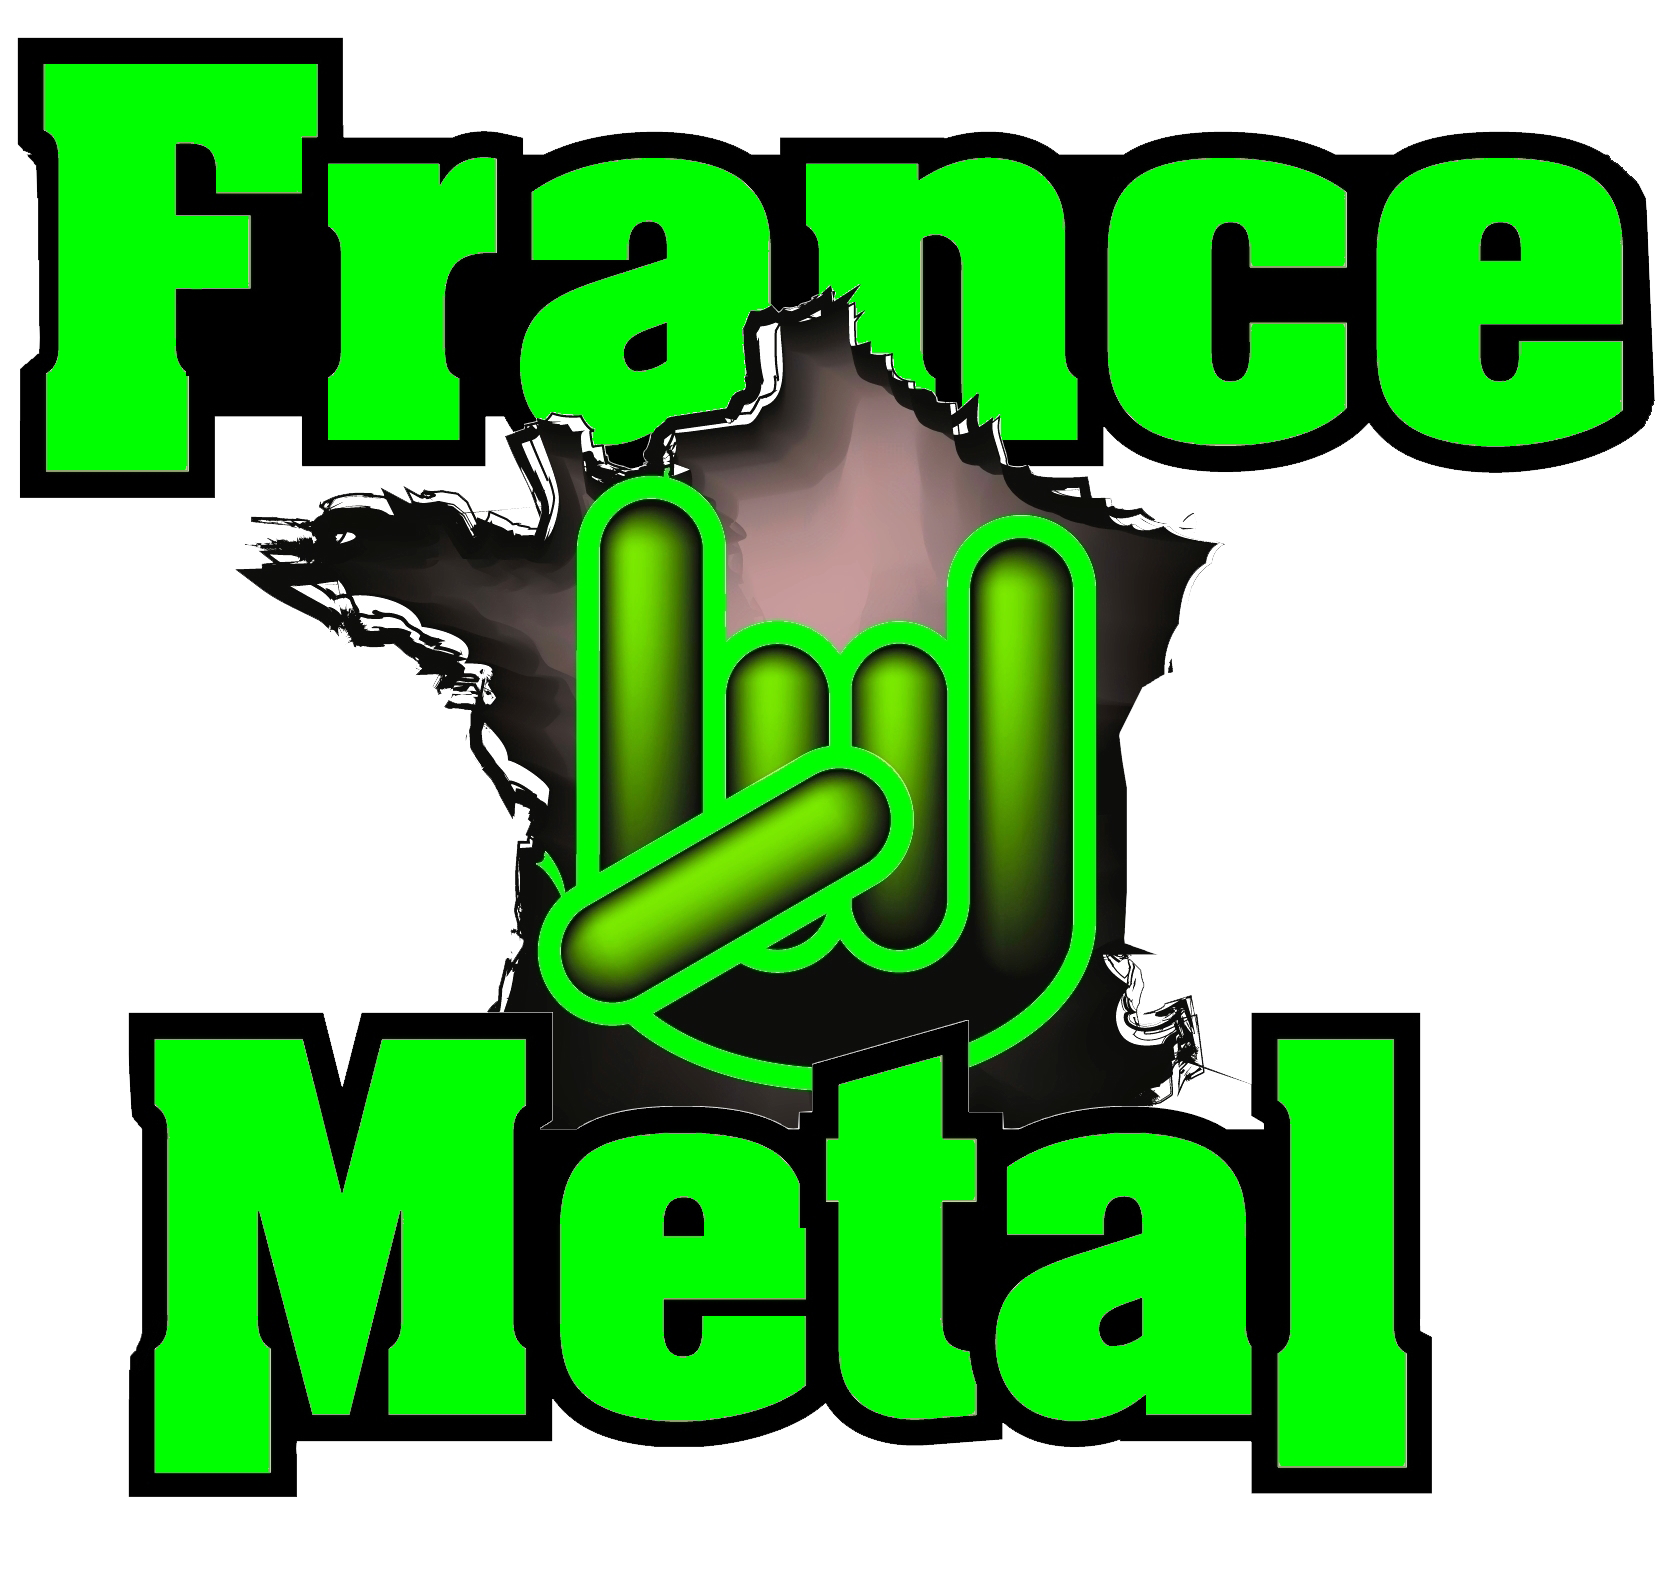 France Metal Green transparent